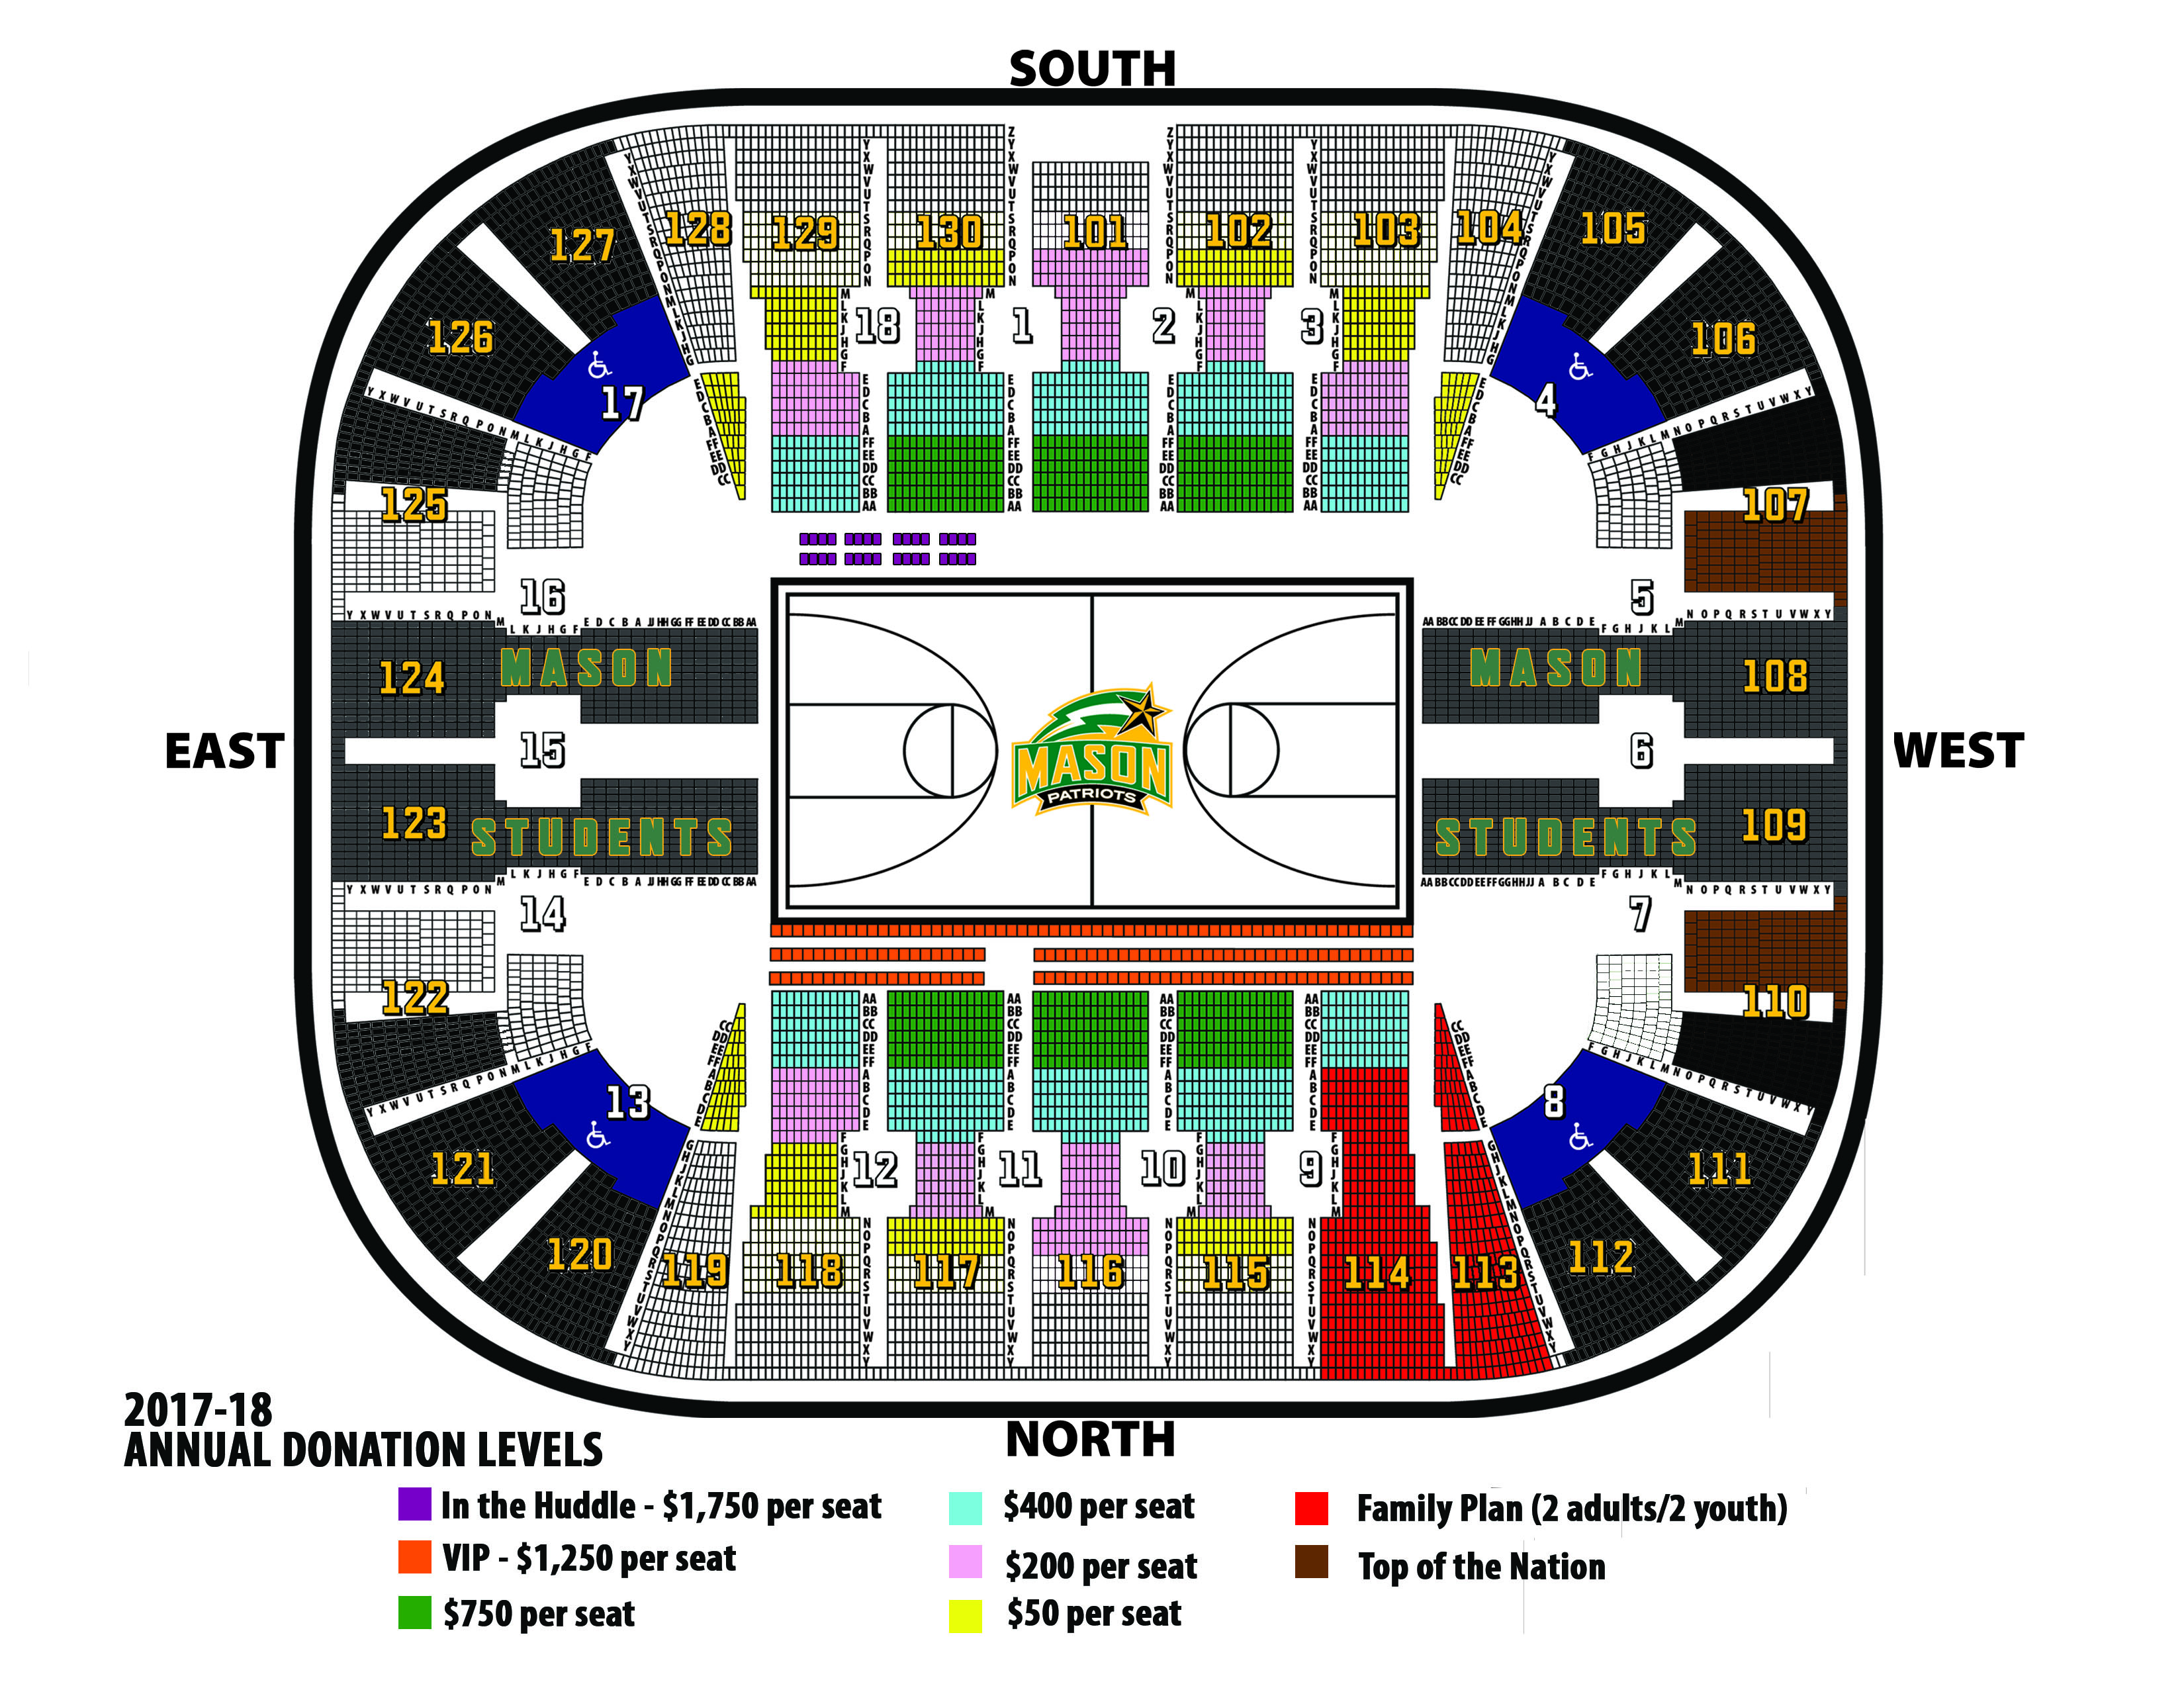 Color printing gmu - If You Have Any Questions Please Email The Athletic Ticket Office At Icatix Gmu Edu Or Call Us At 703 993 3270